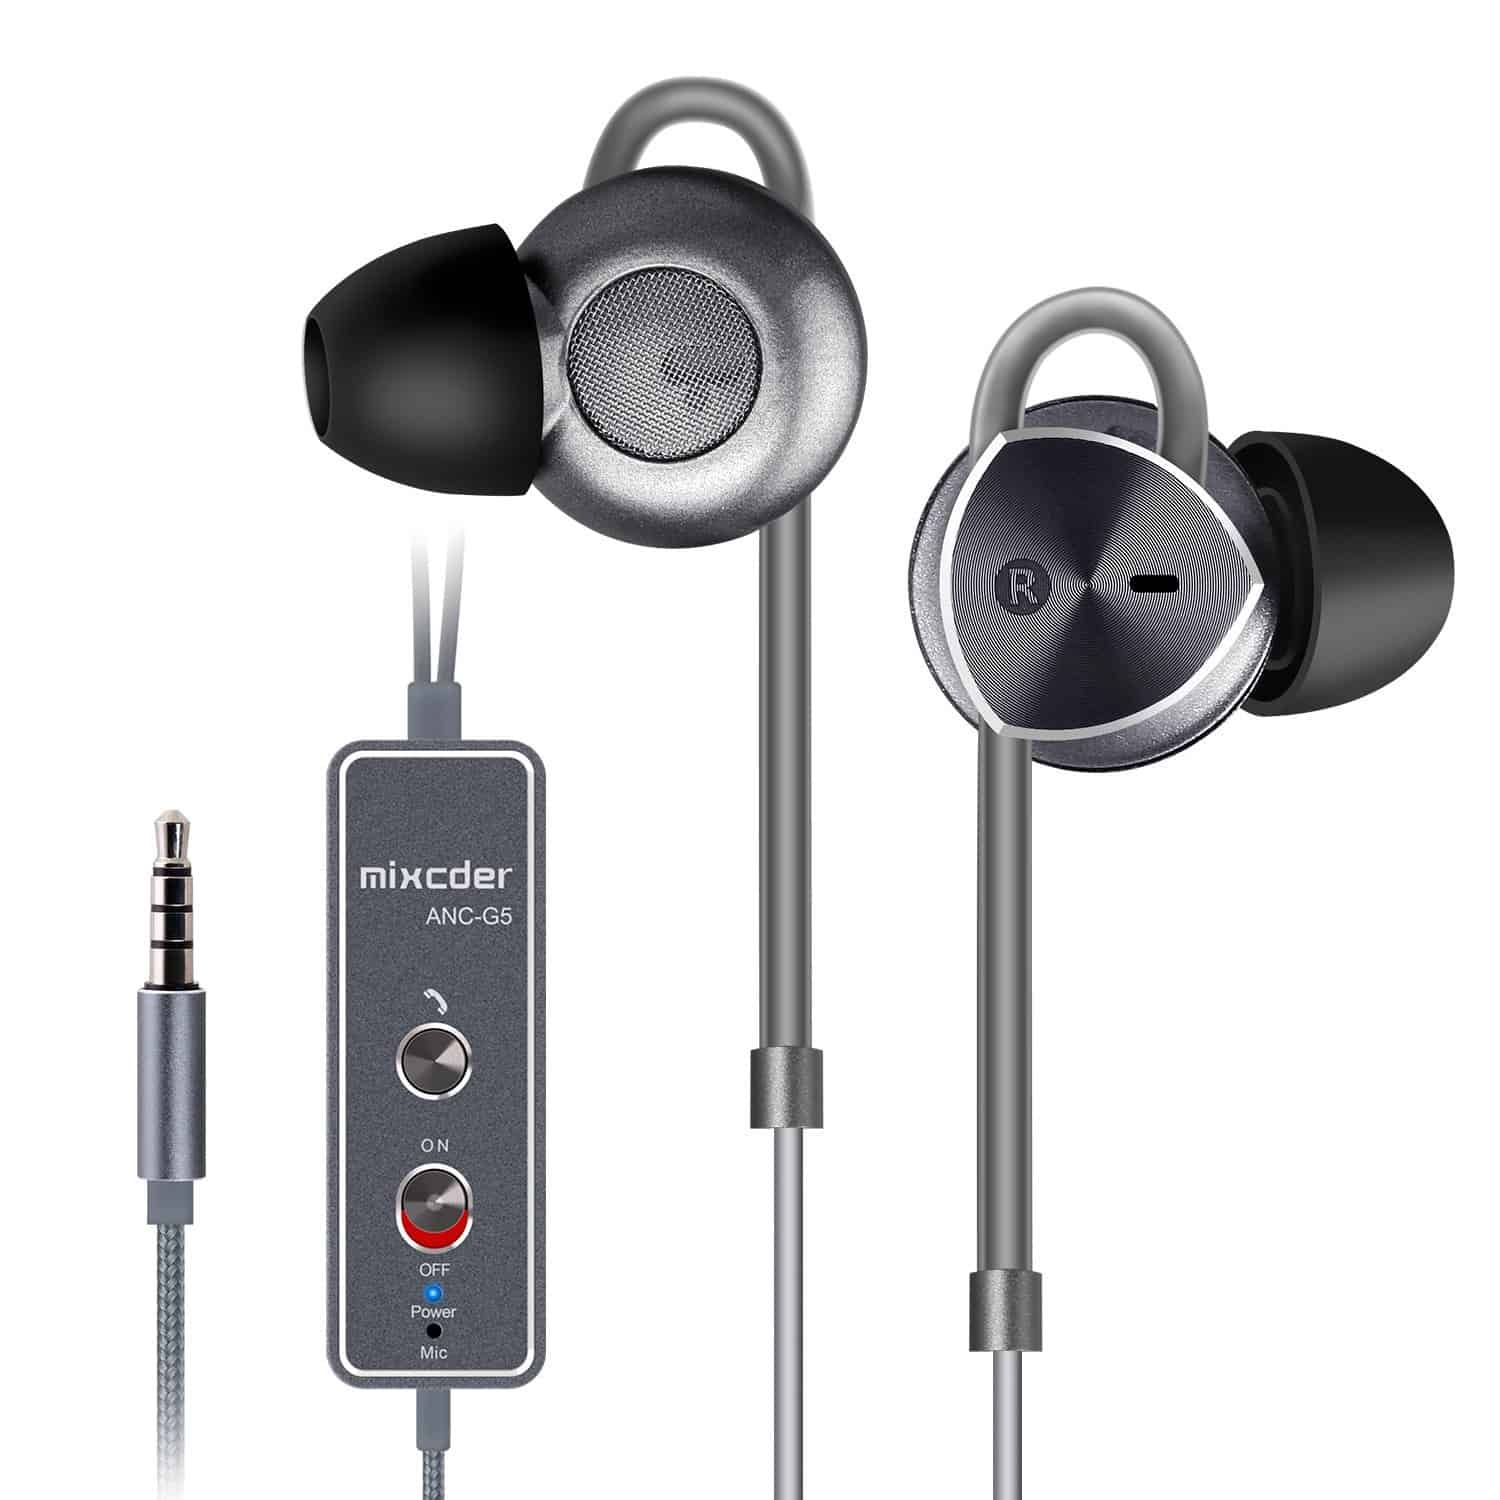 Mixcder ANC G5 - Best Earbuds Under $30: Top 10 Handpicked Cheap Earbuds